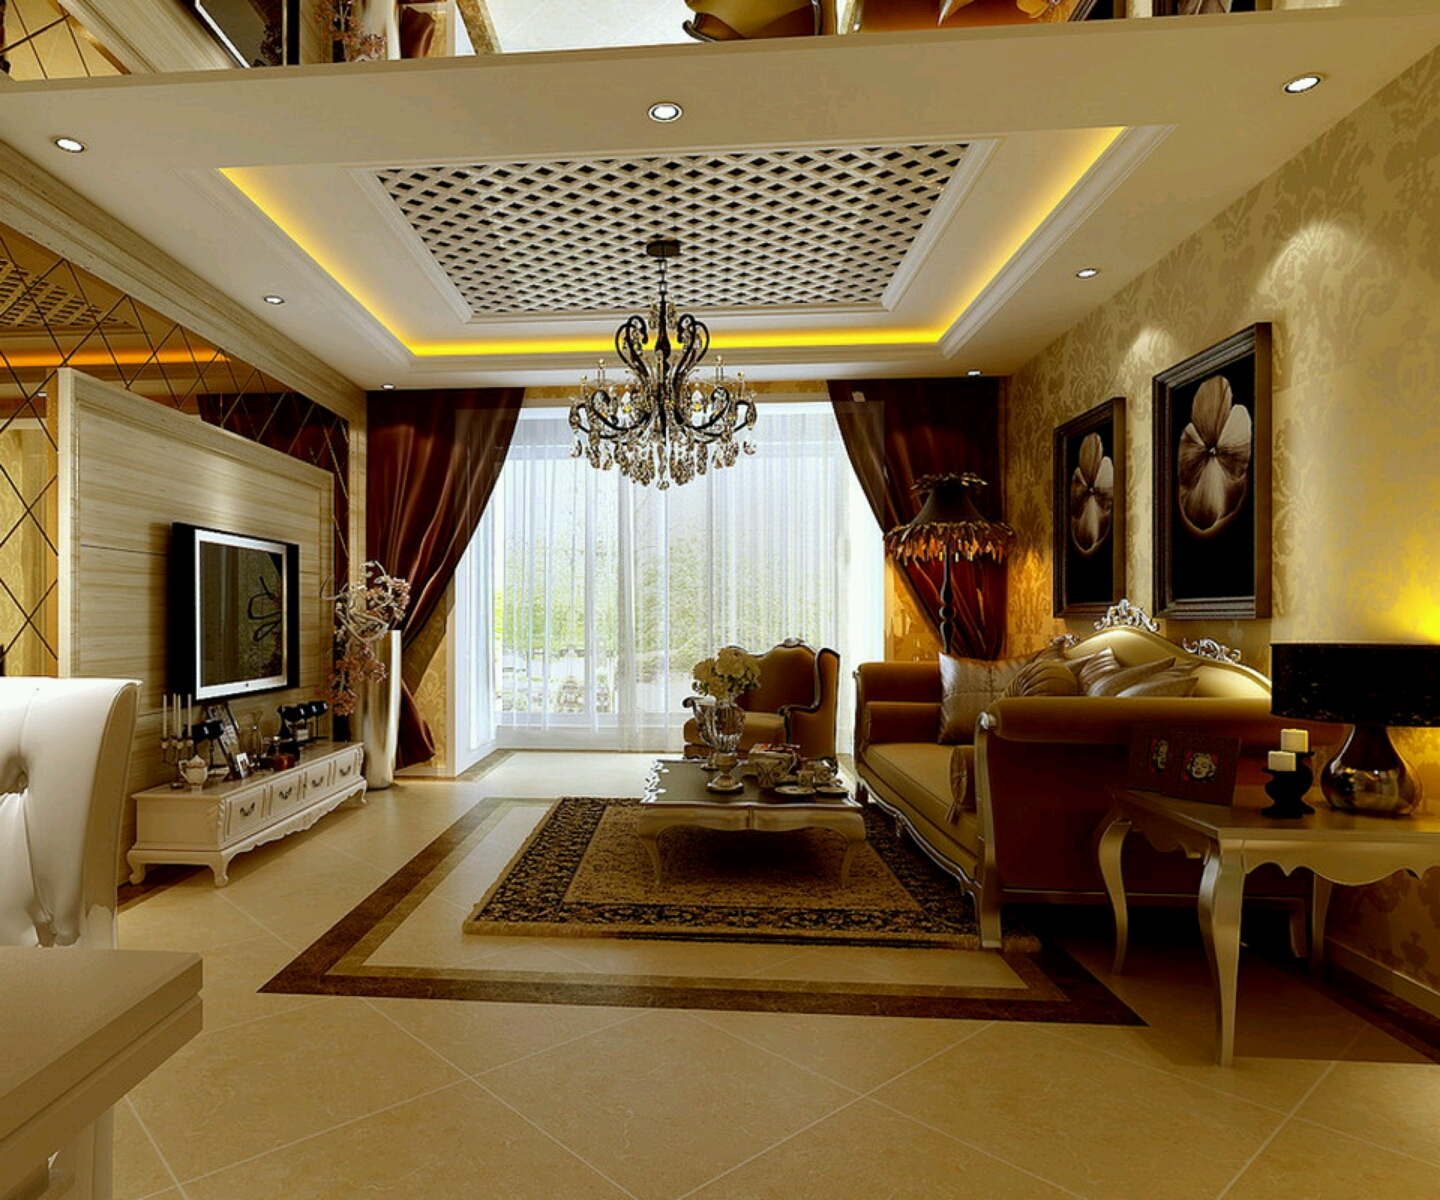 New home designs latest luxury homes interior decoration for Interior design for living room images